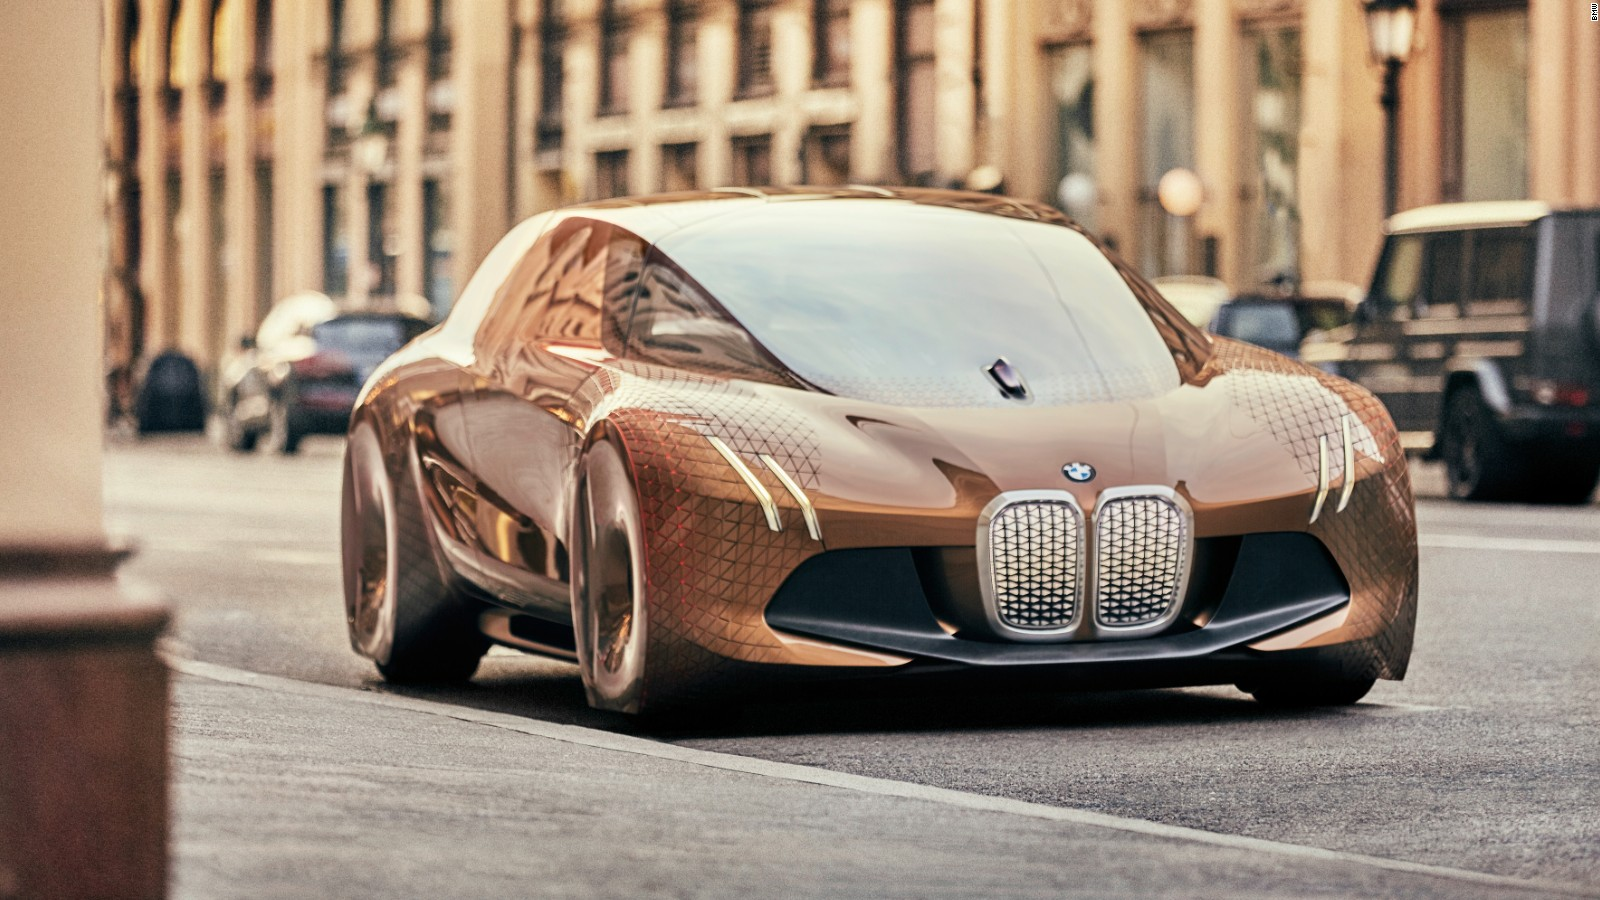 313a32d6588 Why car designers resurrect old models - CNN Style